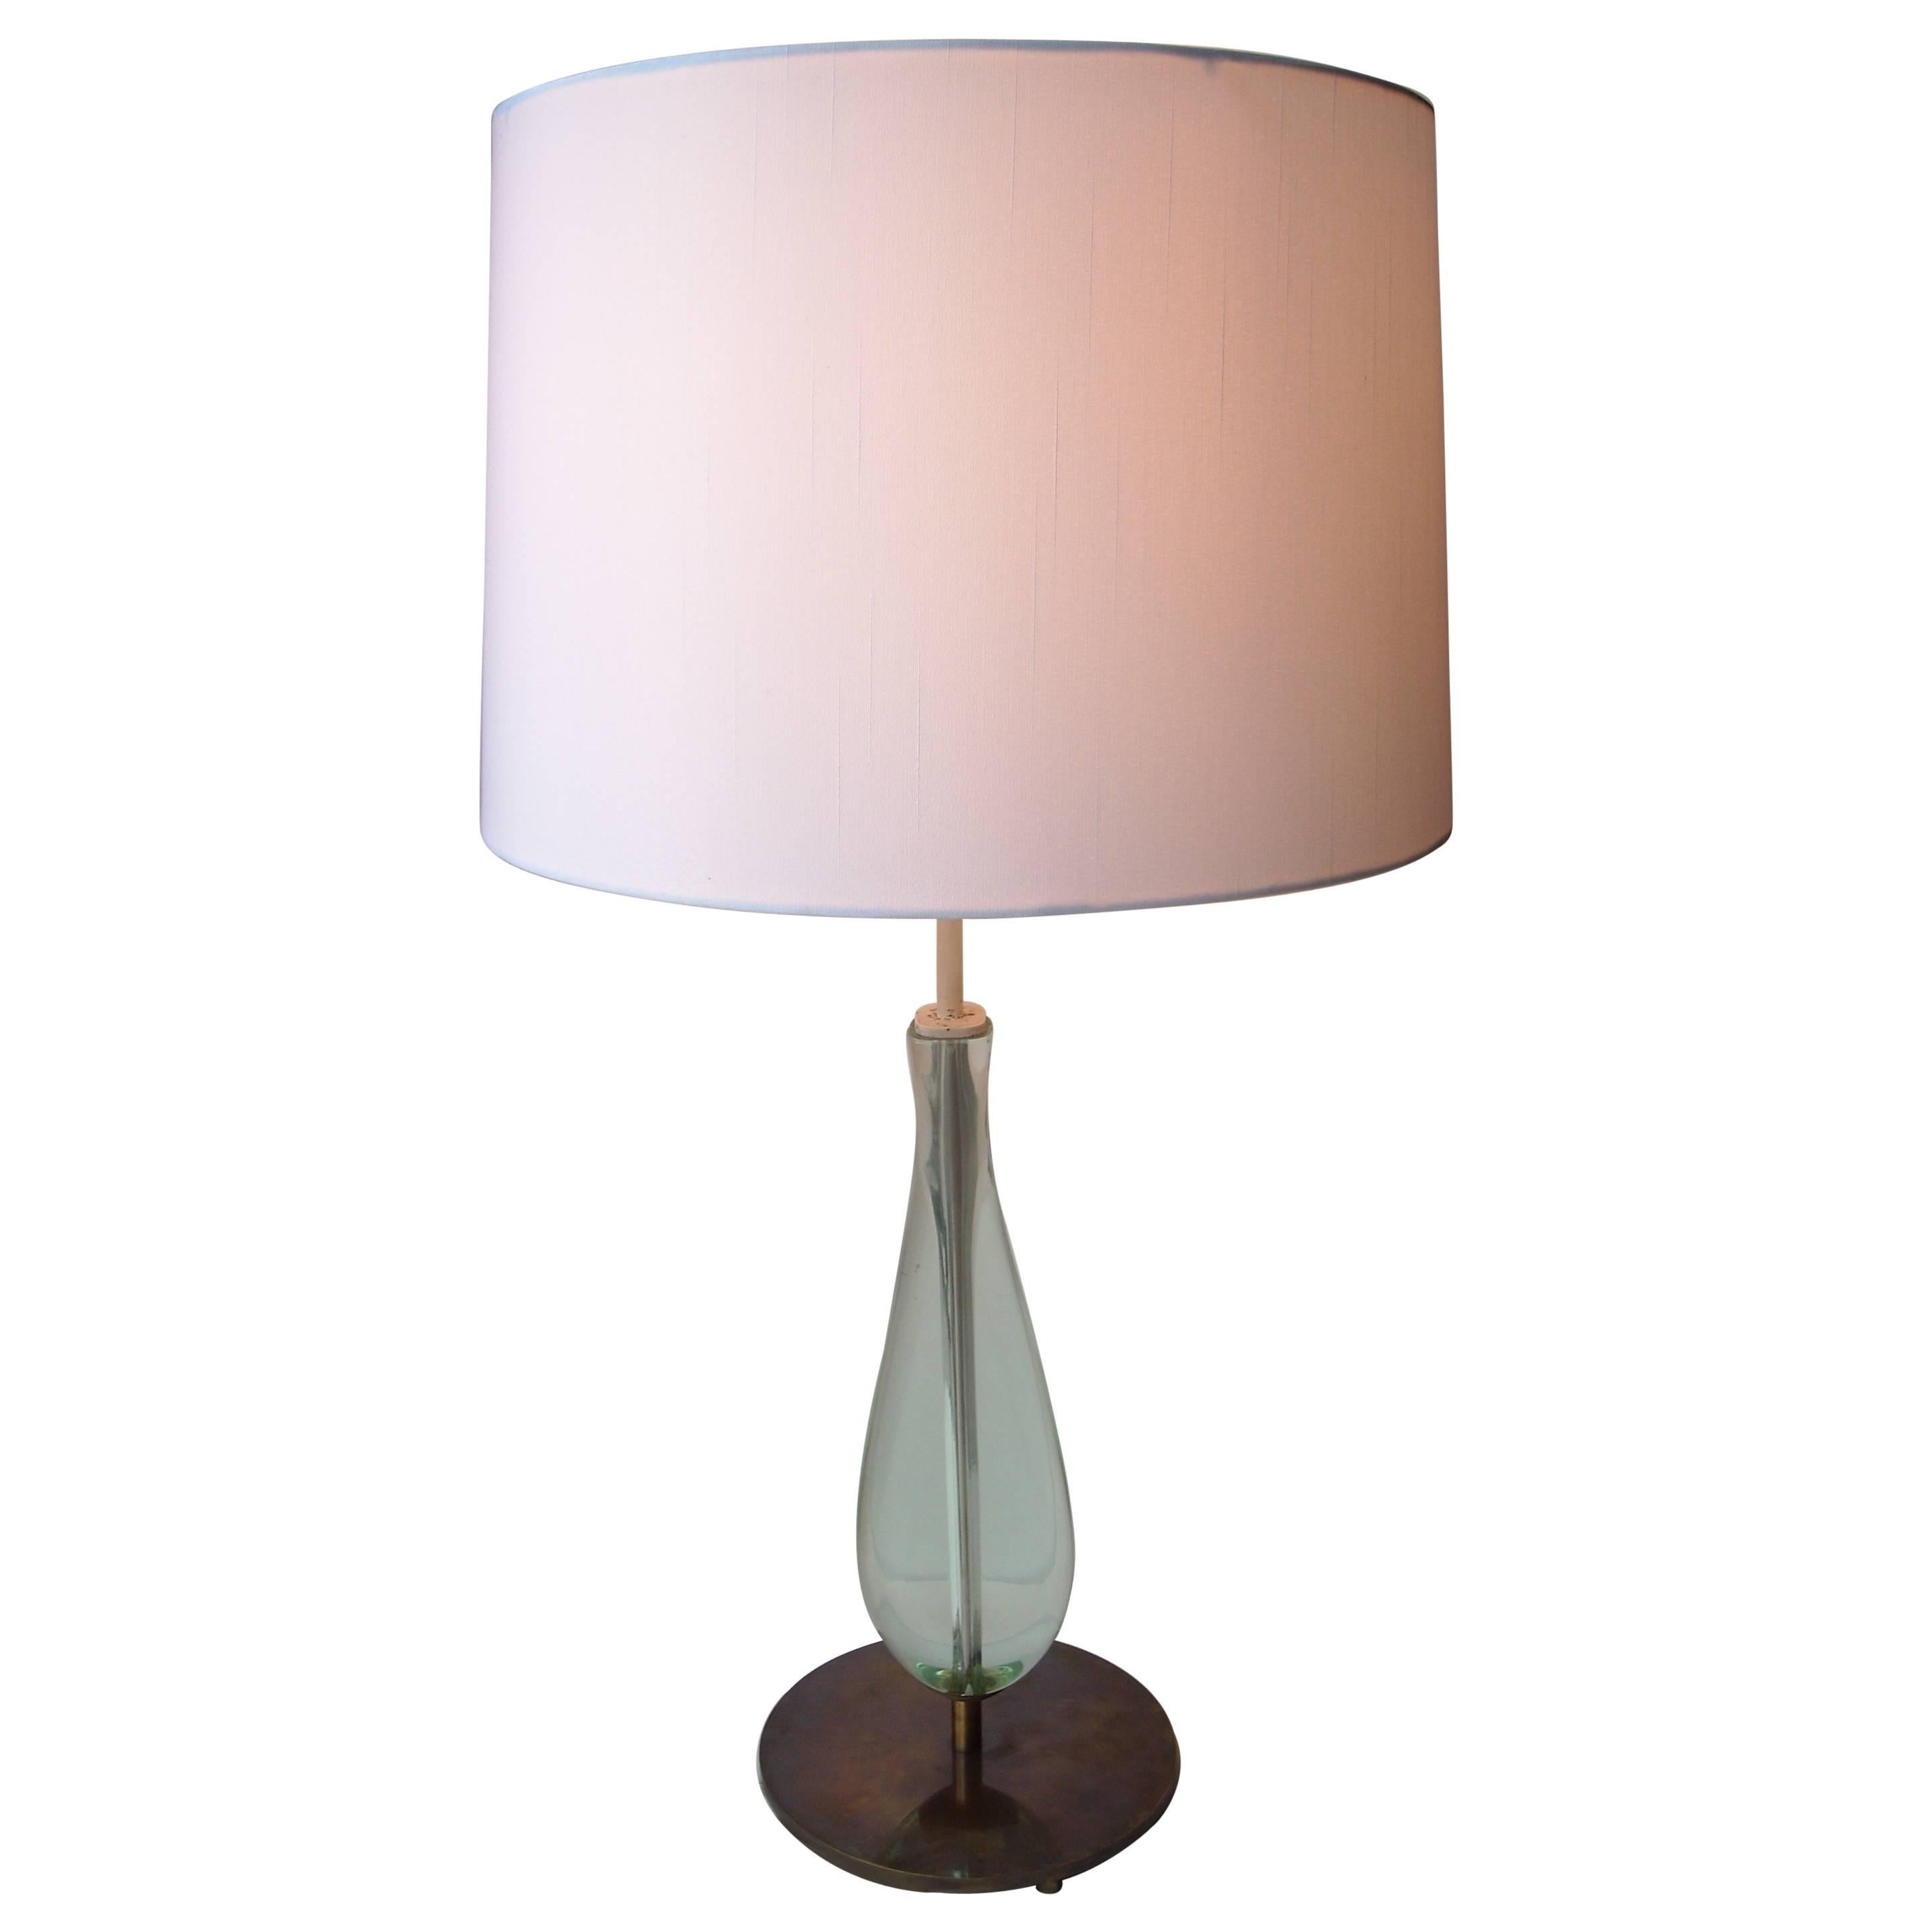 Max Ingrand Glass and Brass Table Lamp for Fontana Arte, Model 2206